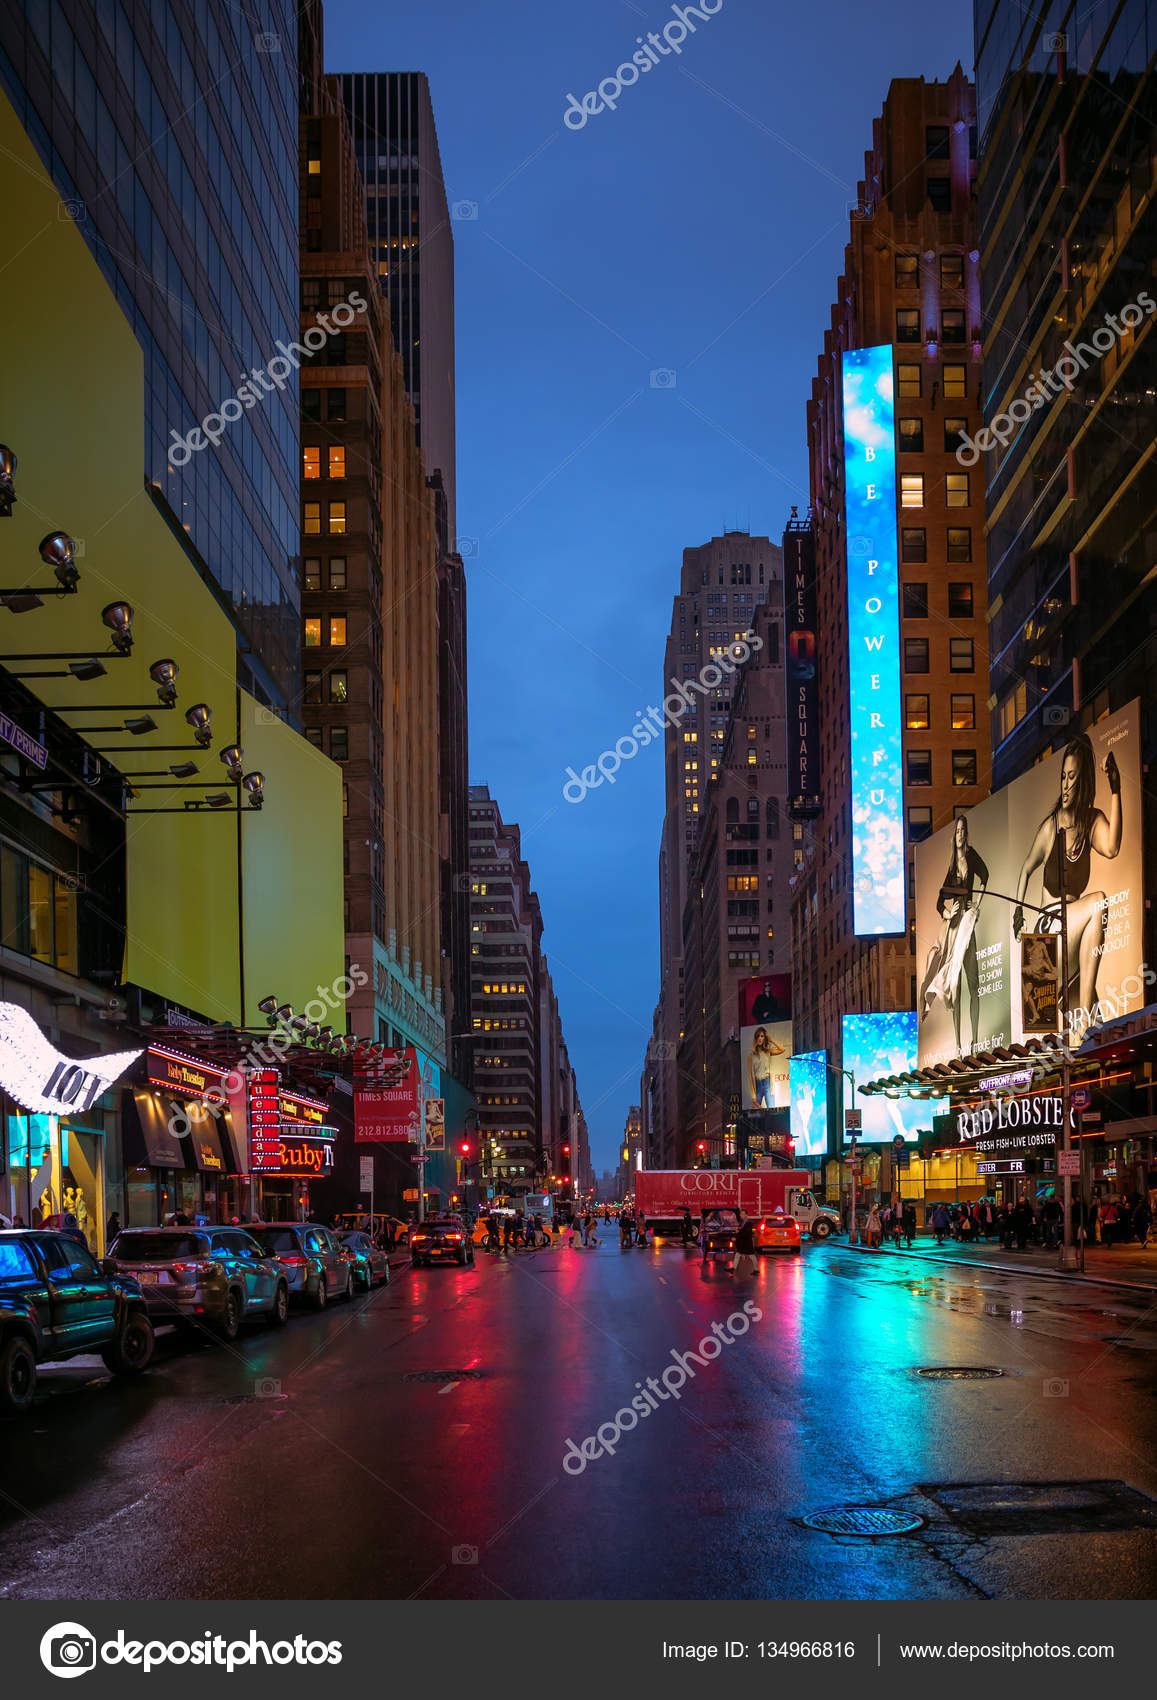 Pictures Night Time New York City New York City Streets At Night Time Stock Editorial Photo C Palinchak 134966816